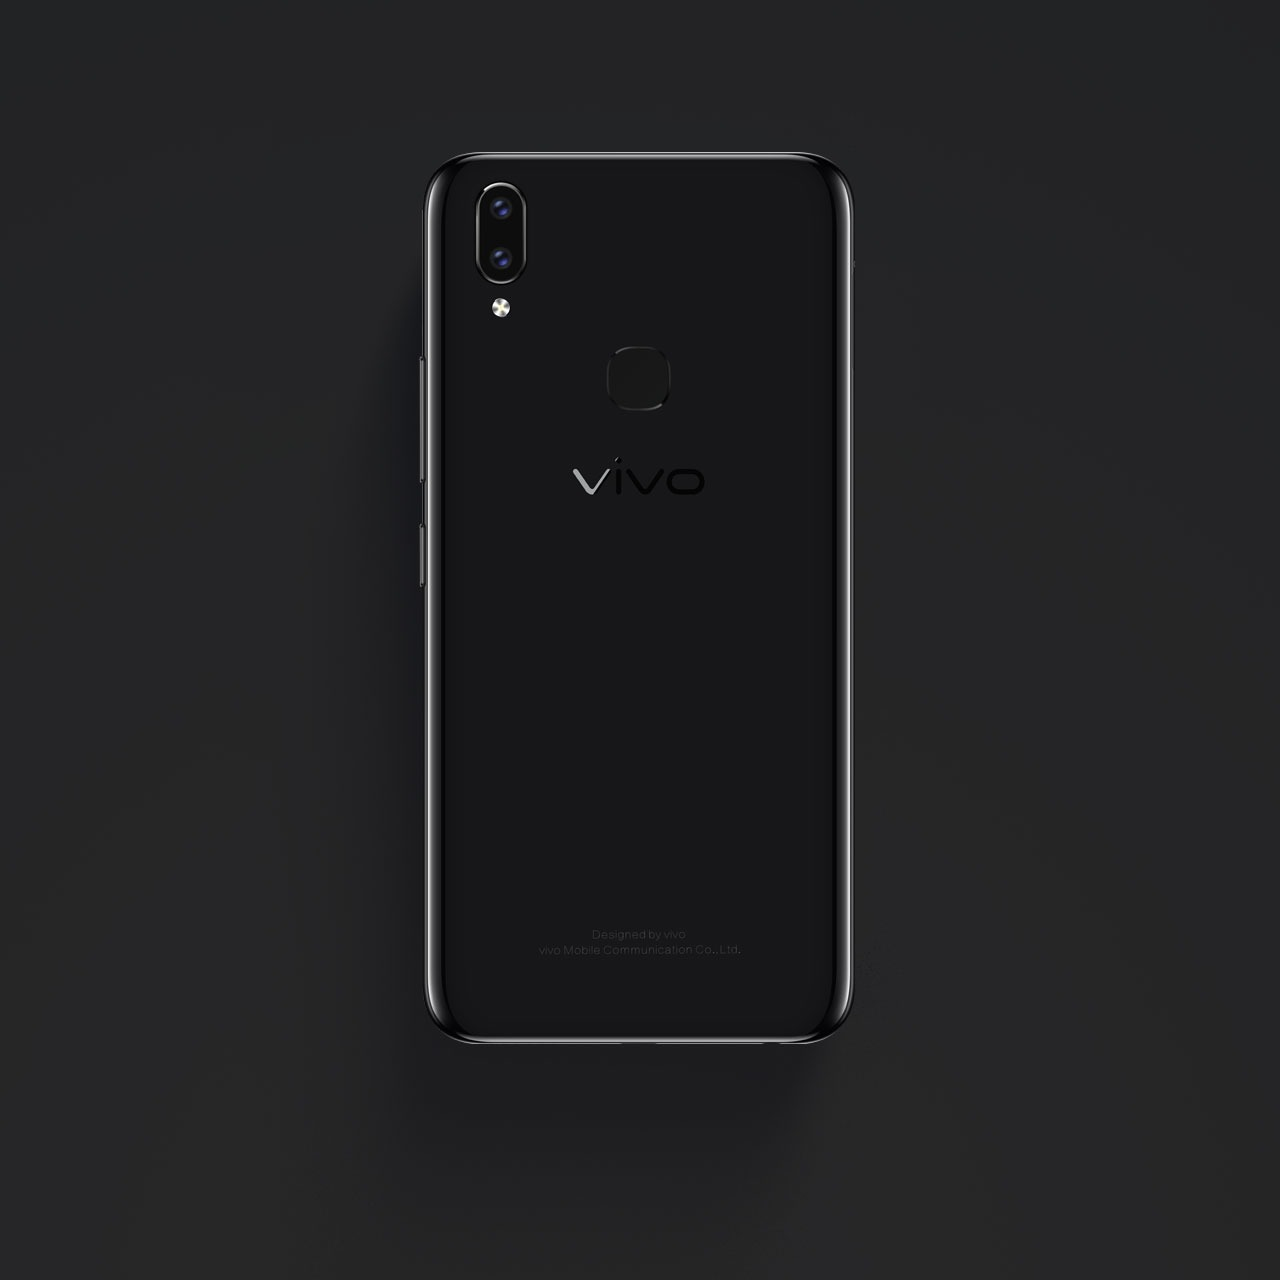 Vivo V9 to launch in India today